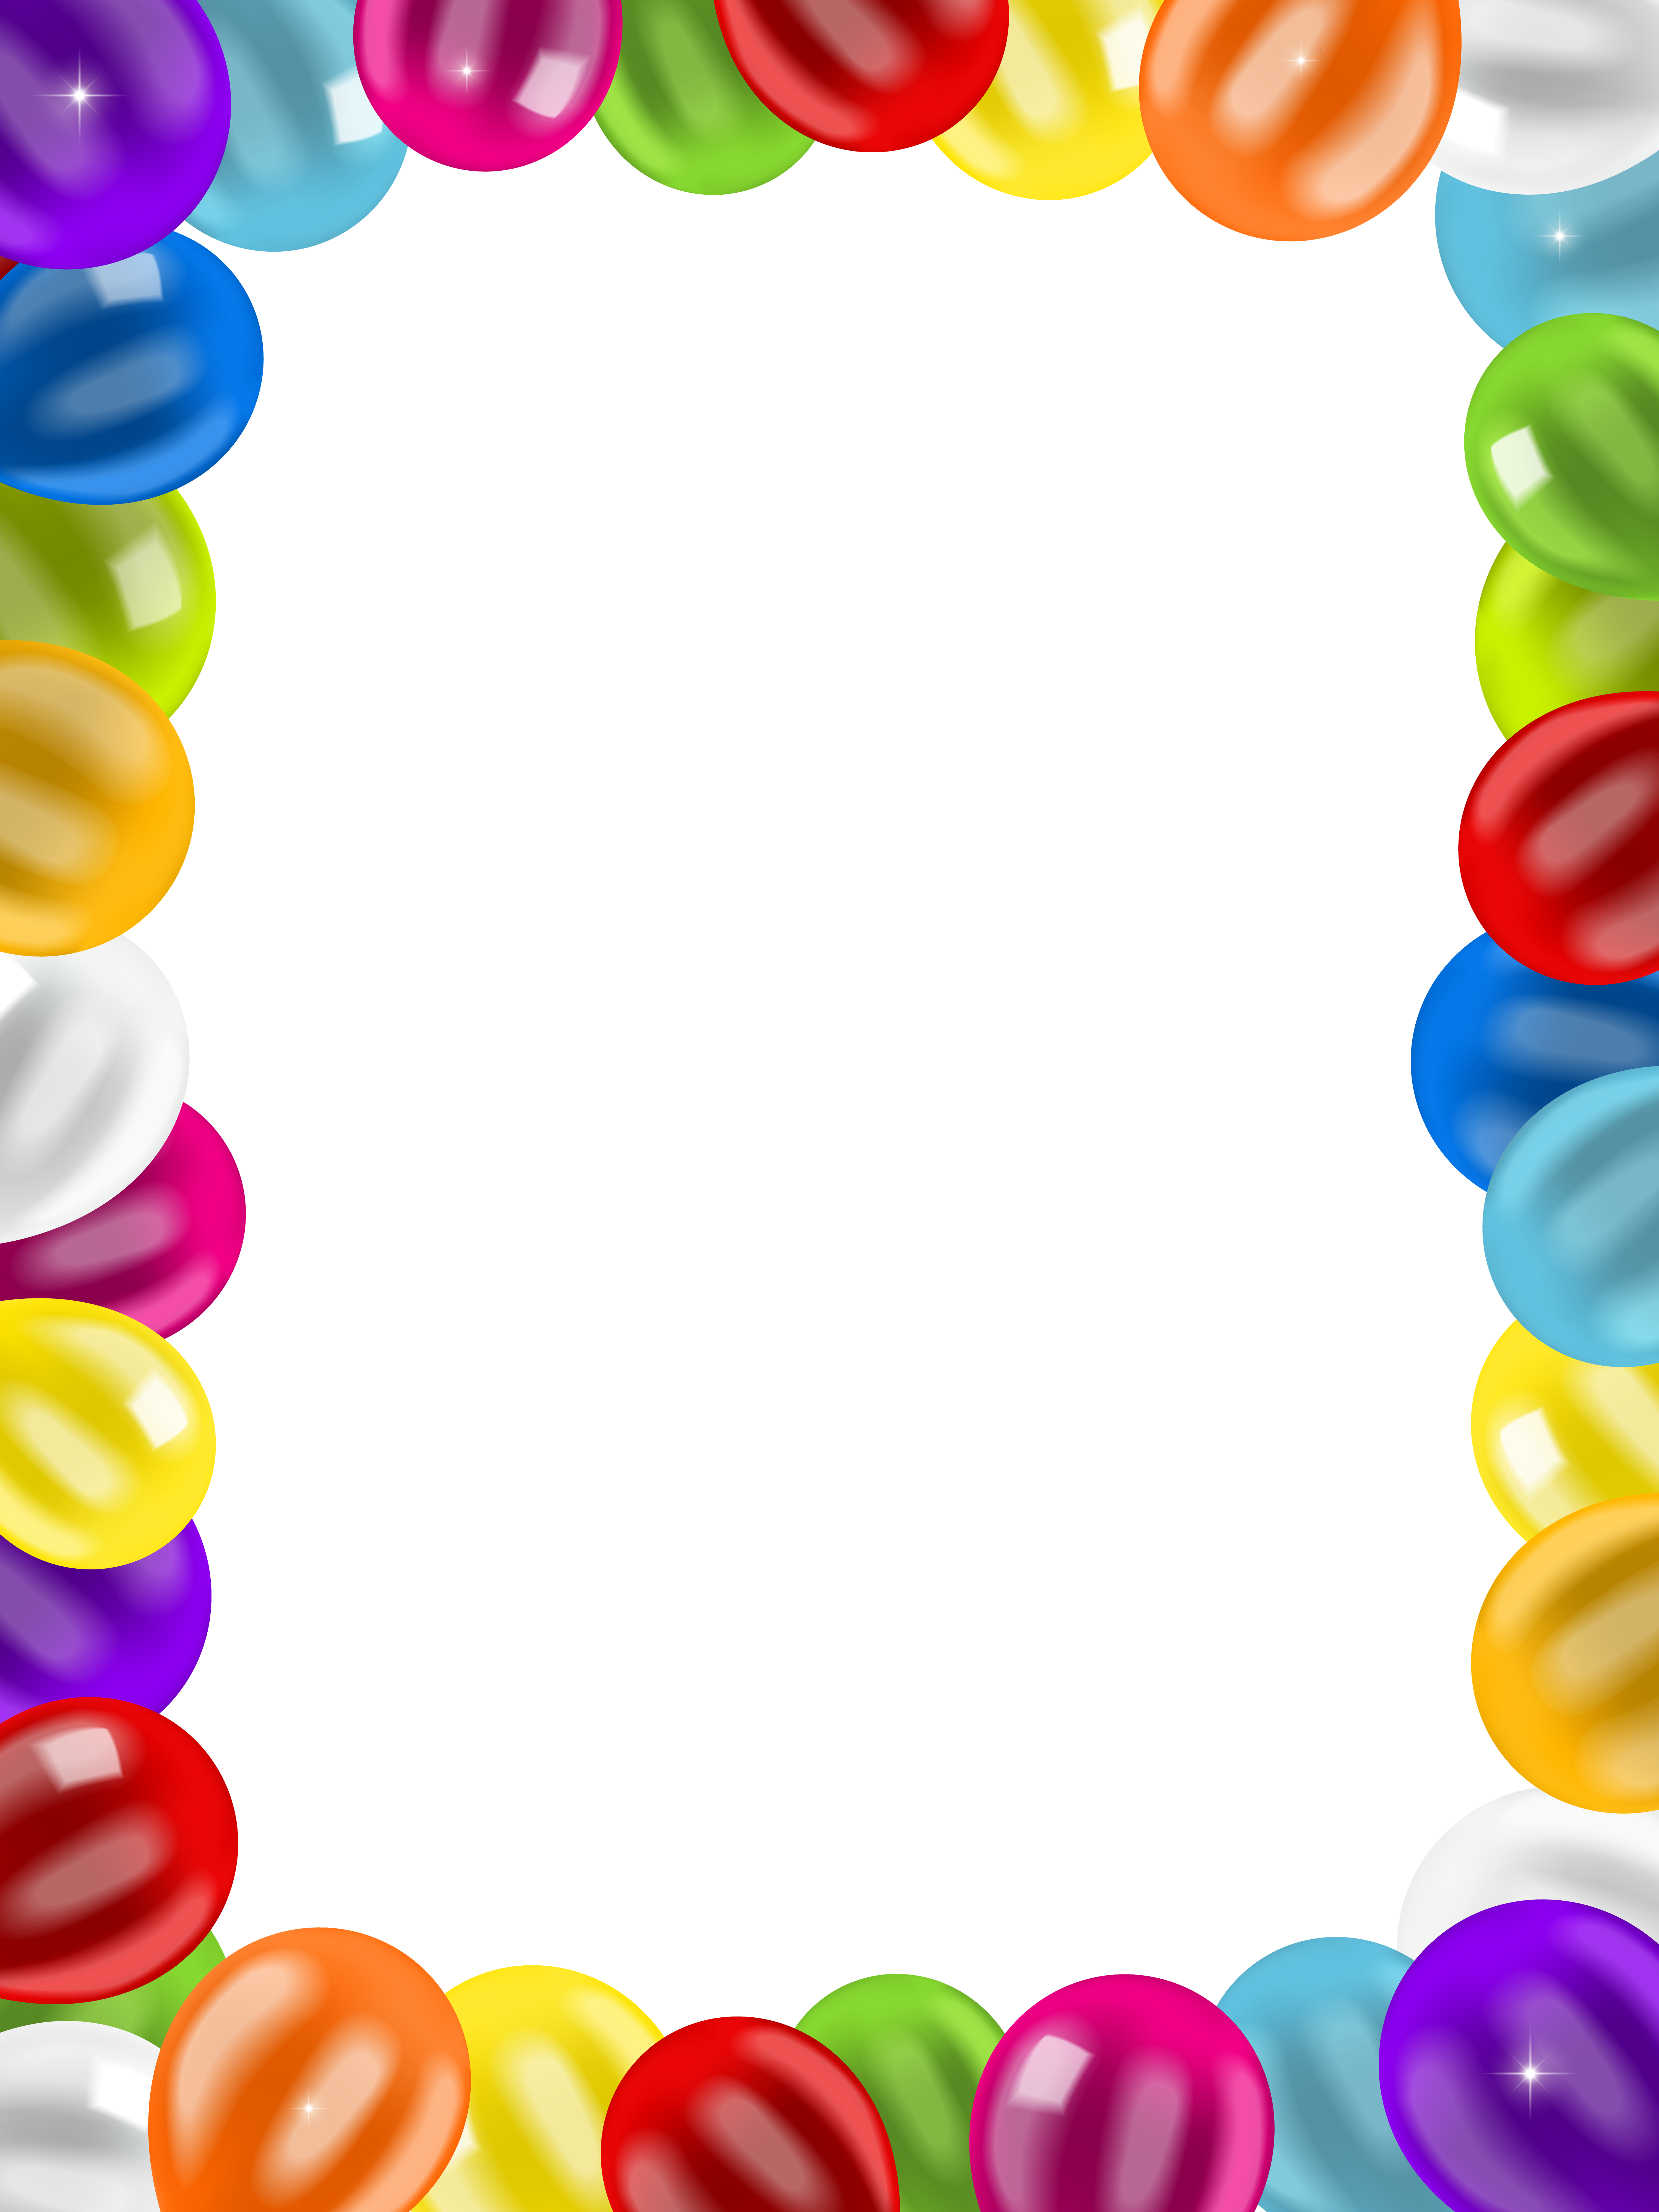 Birthday balloons border png. Frame clip art image